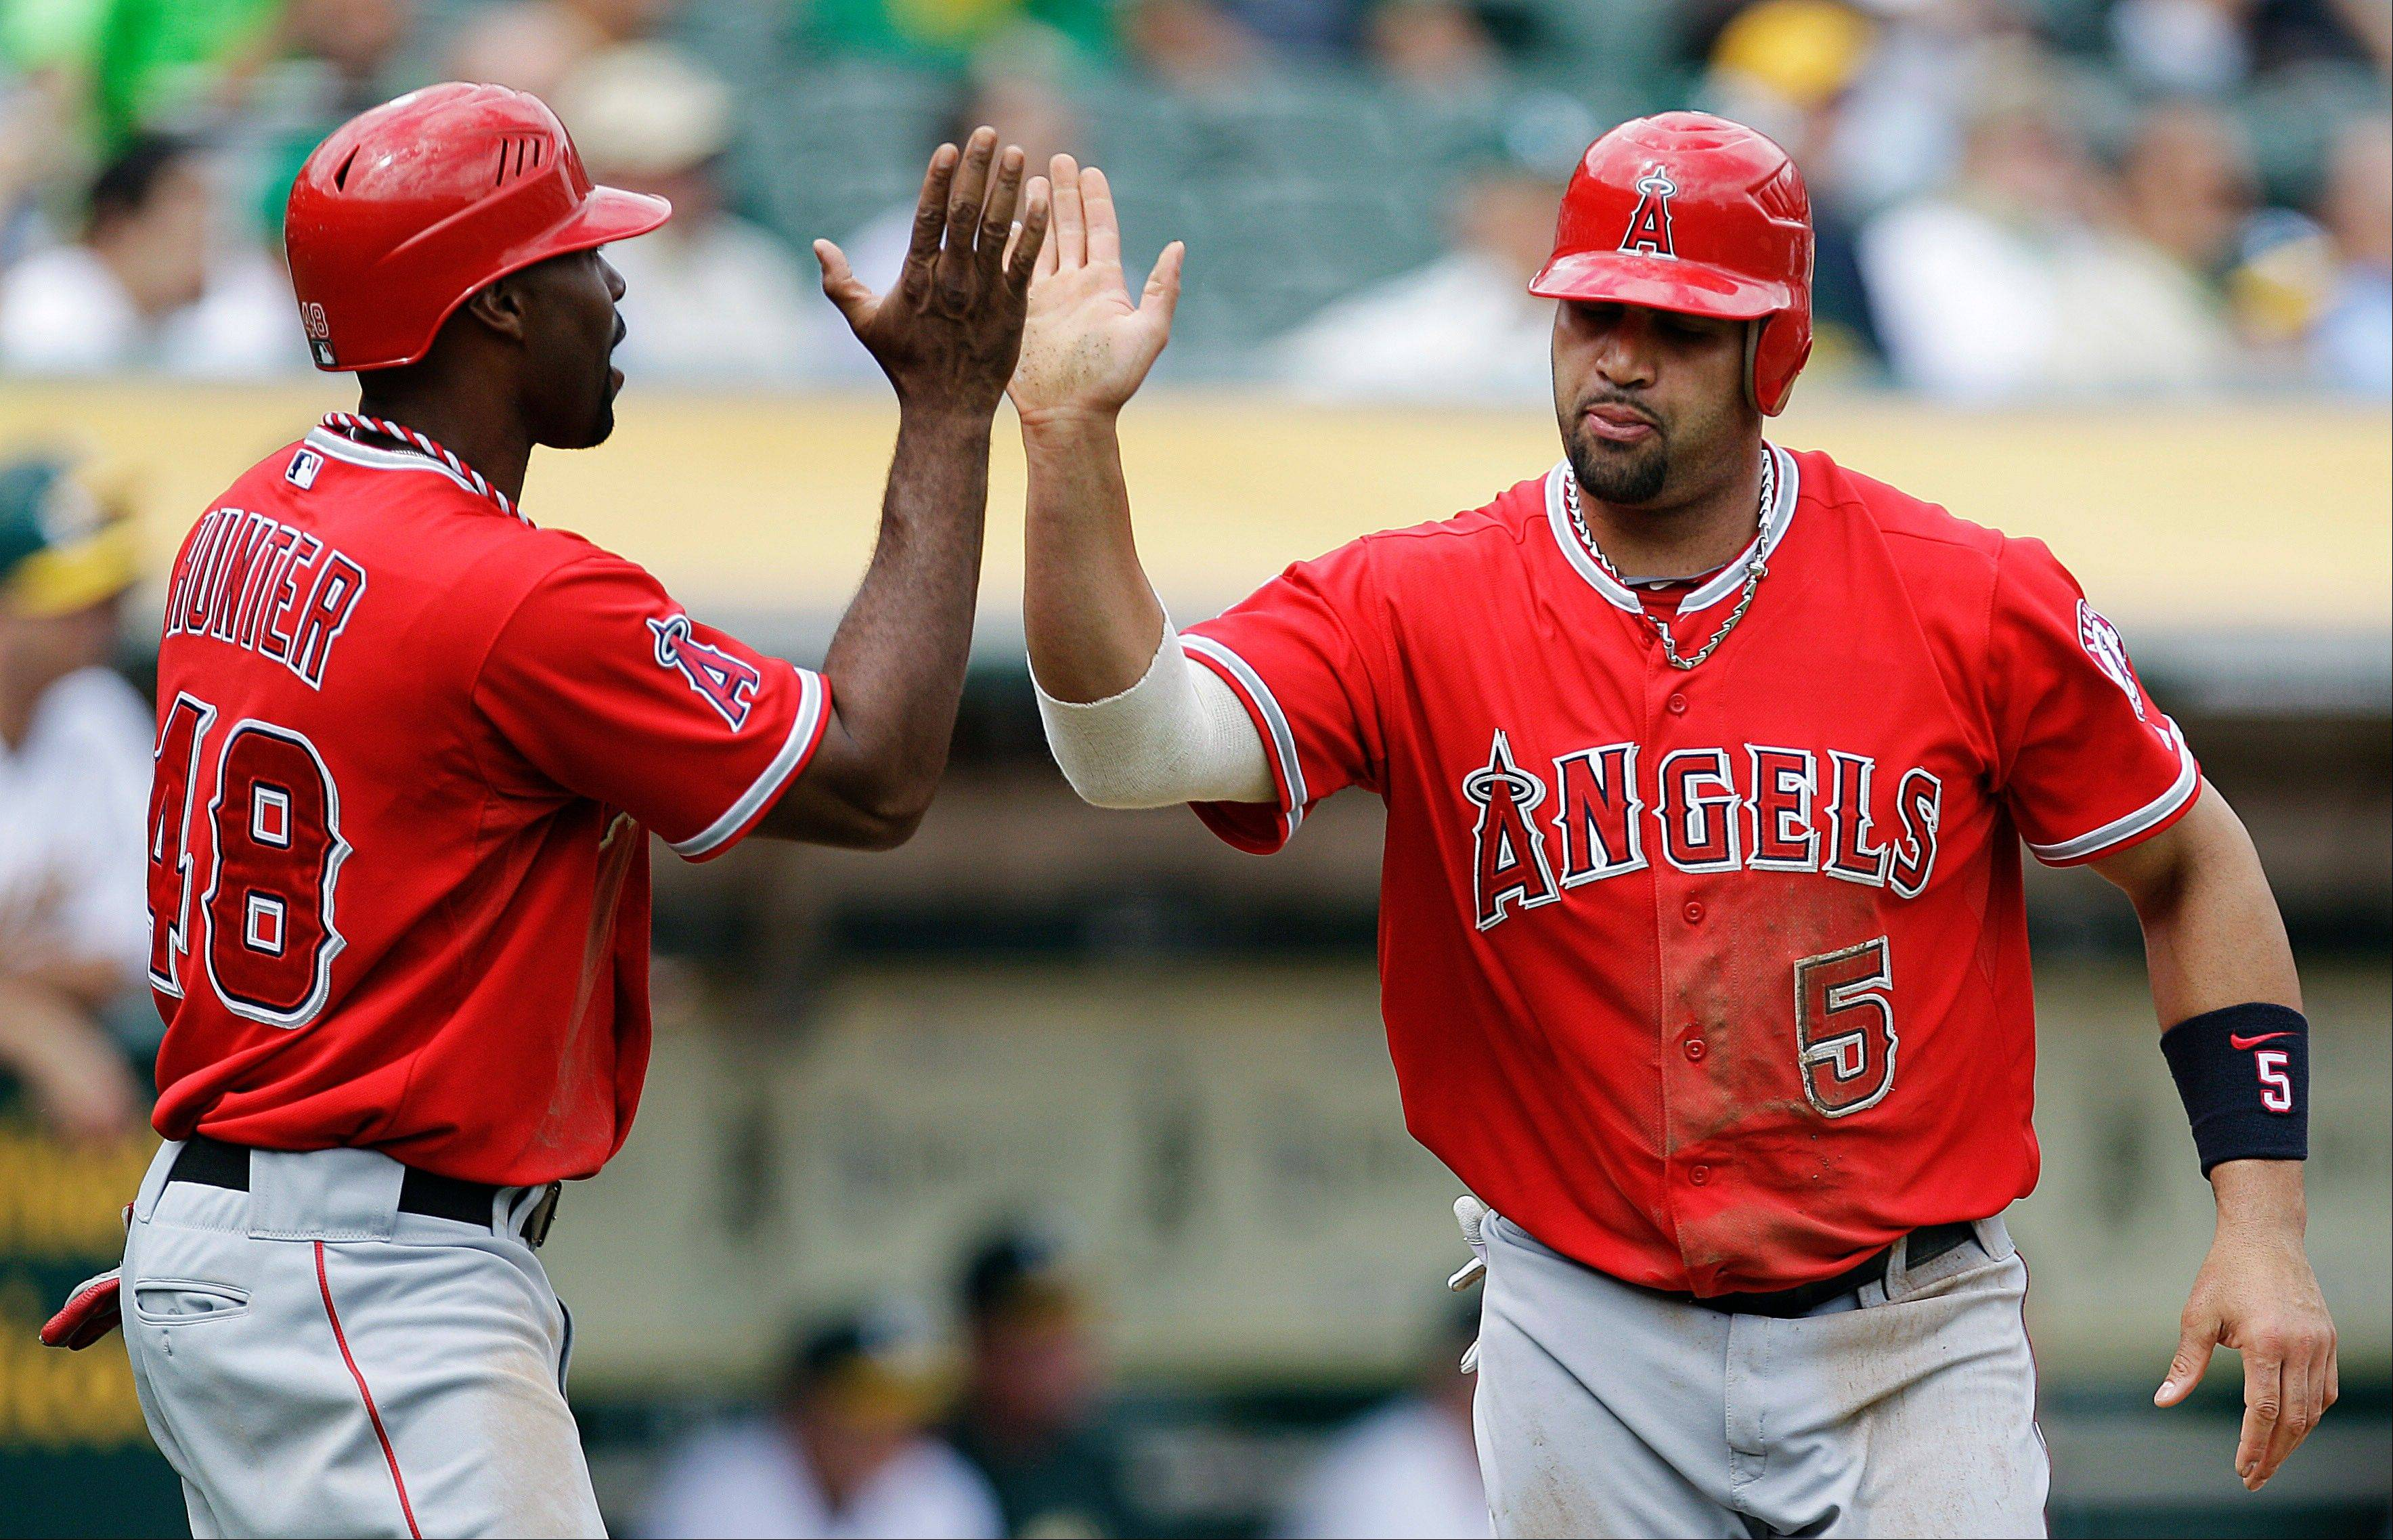 The Angels' Torii Hunter, left, and Albert Pujols celebrate after scoring against the Athletics in the third inning Wednesday in Oakland, Calif.